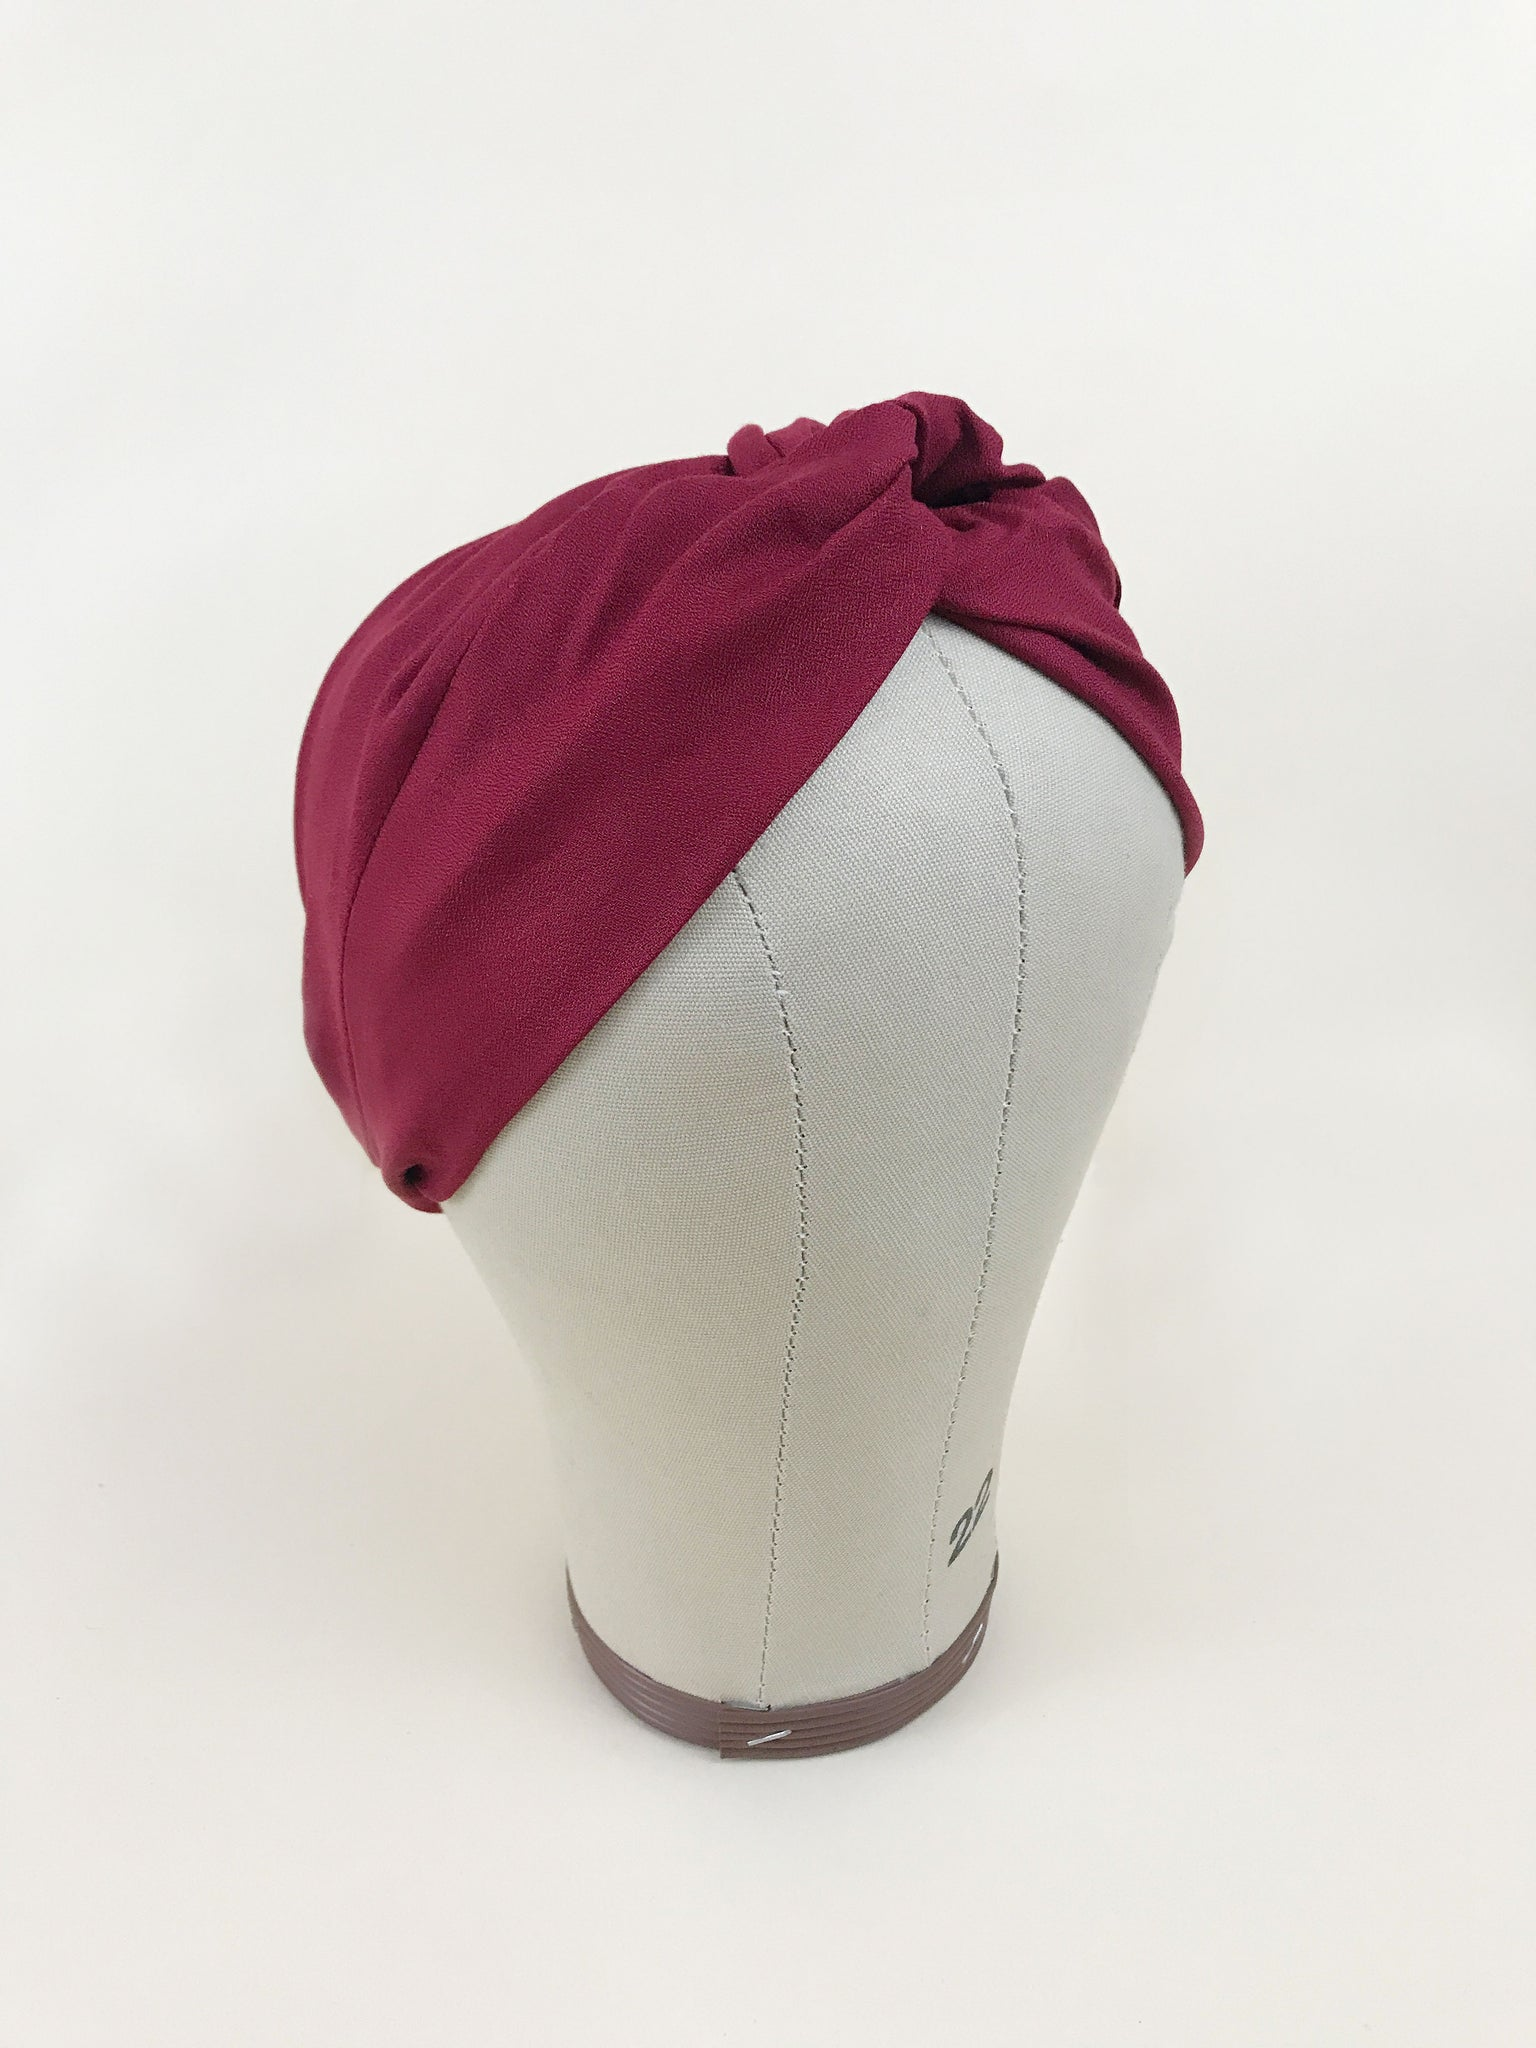 A red twisted headband on a mannequin head.